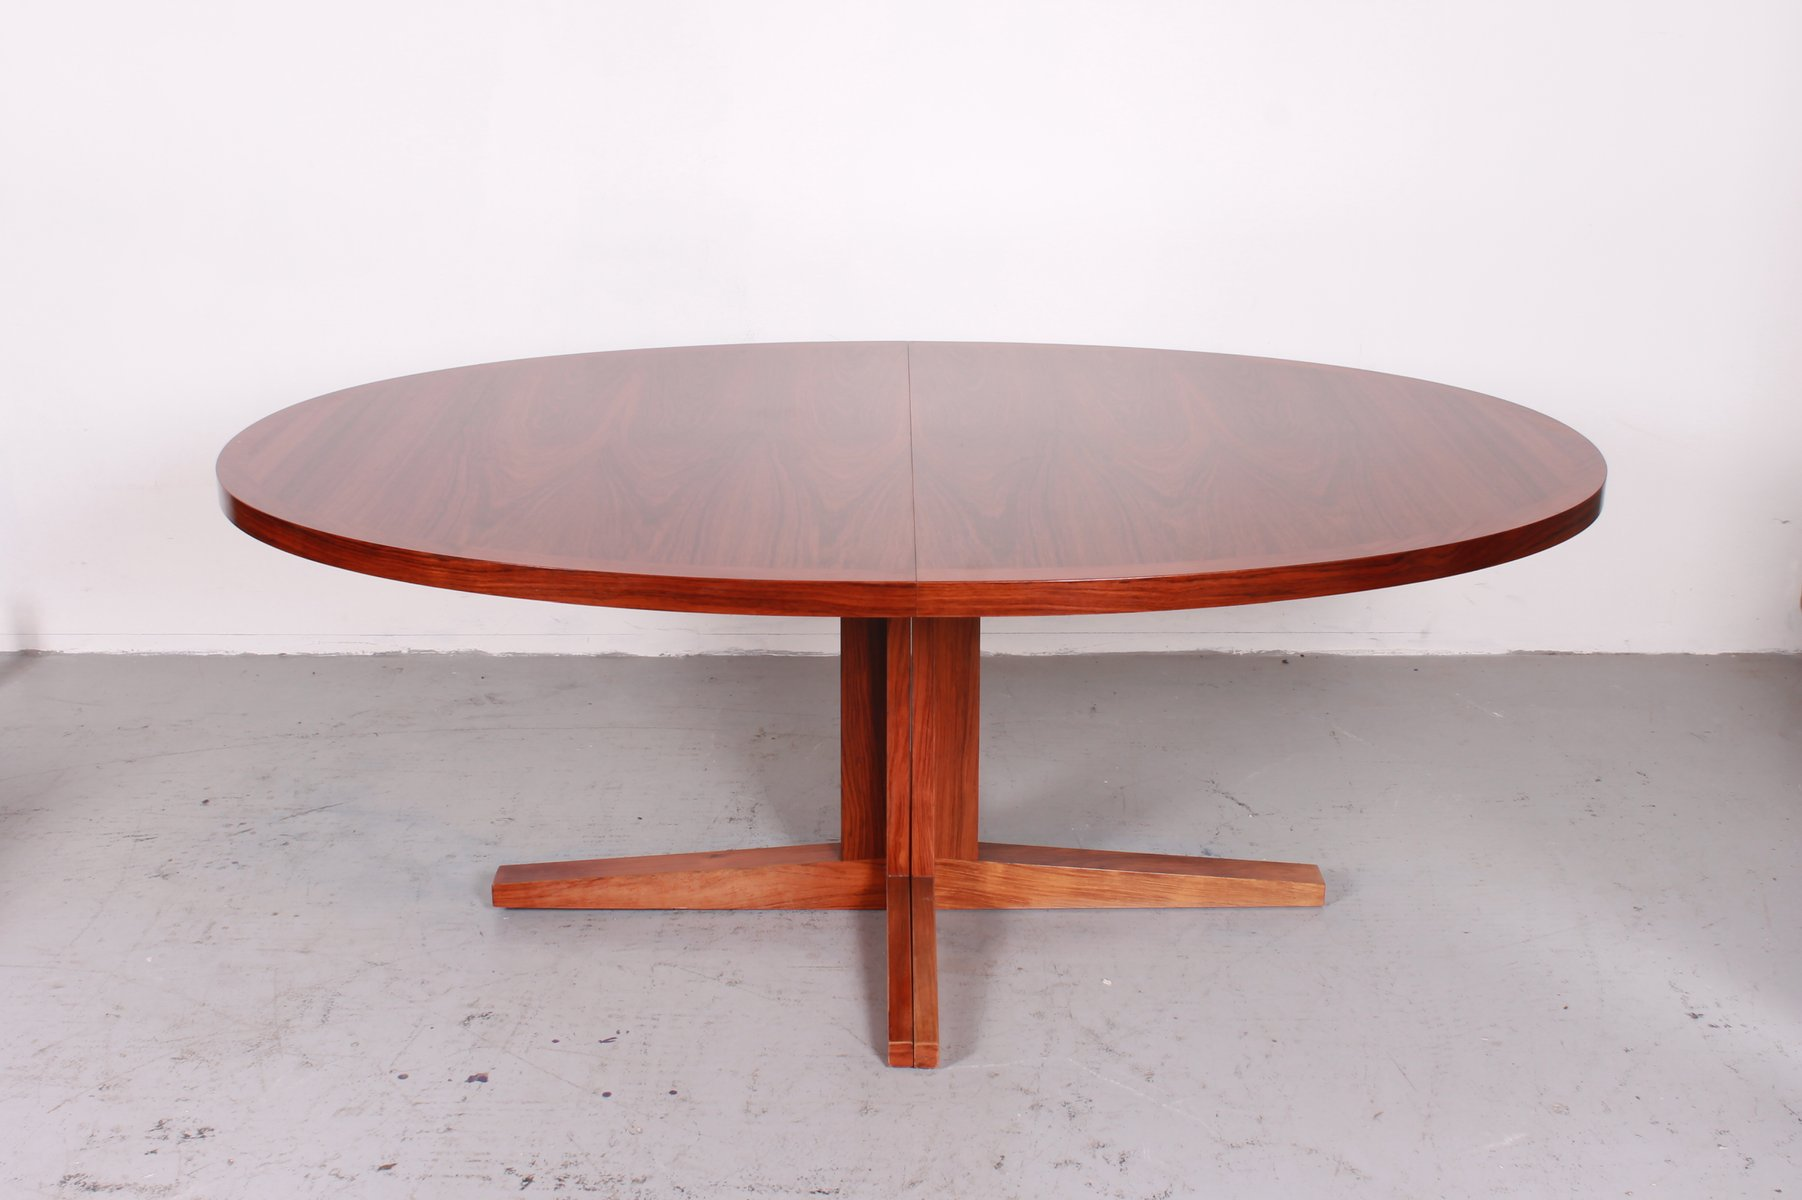 Vintage extensible dining table from dyrlund for sale at for Table 70x70 extensible